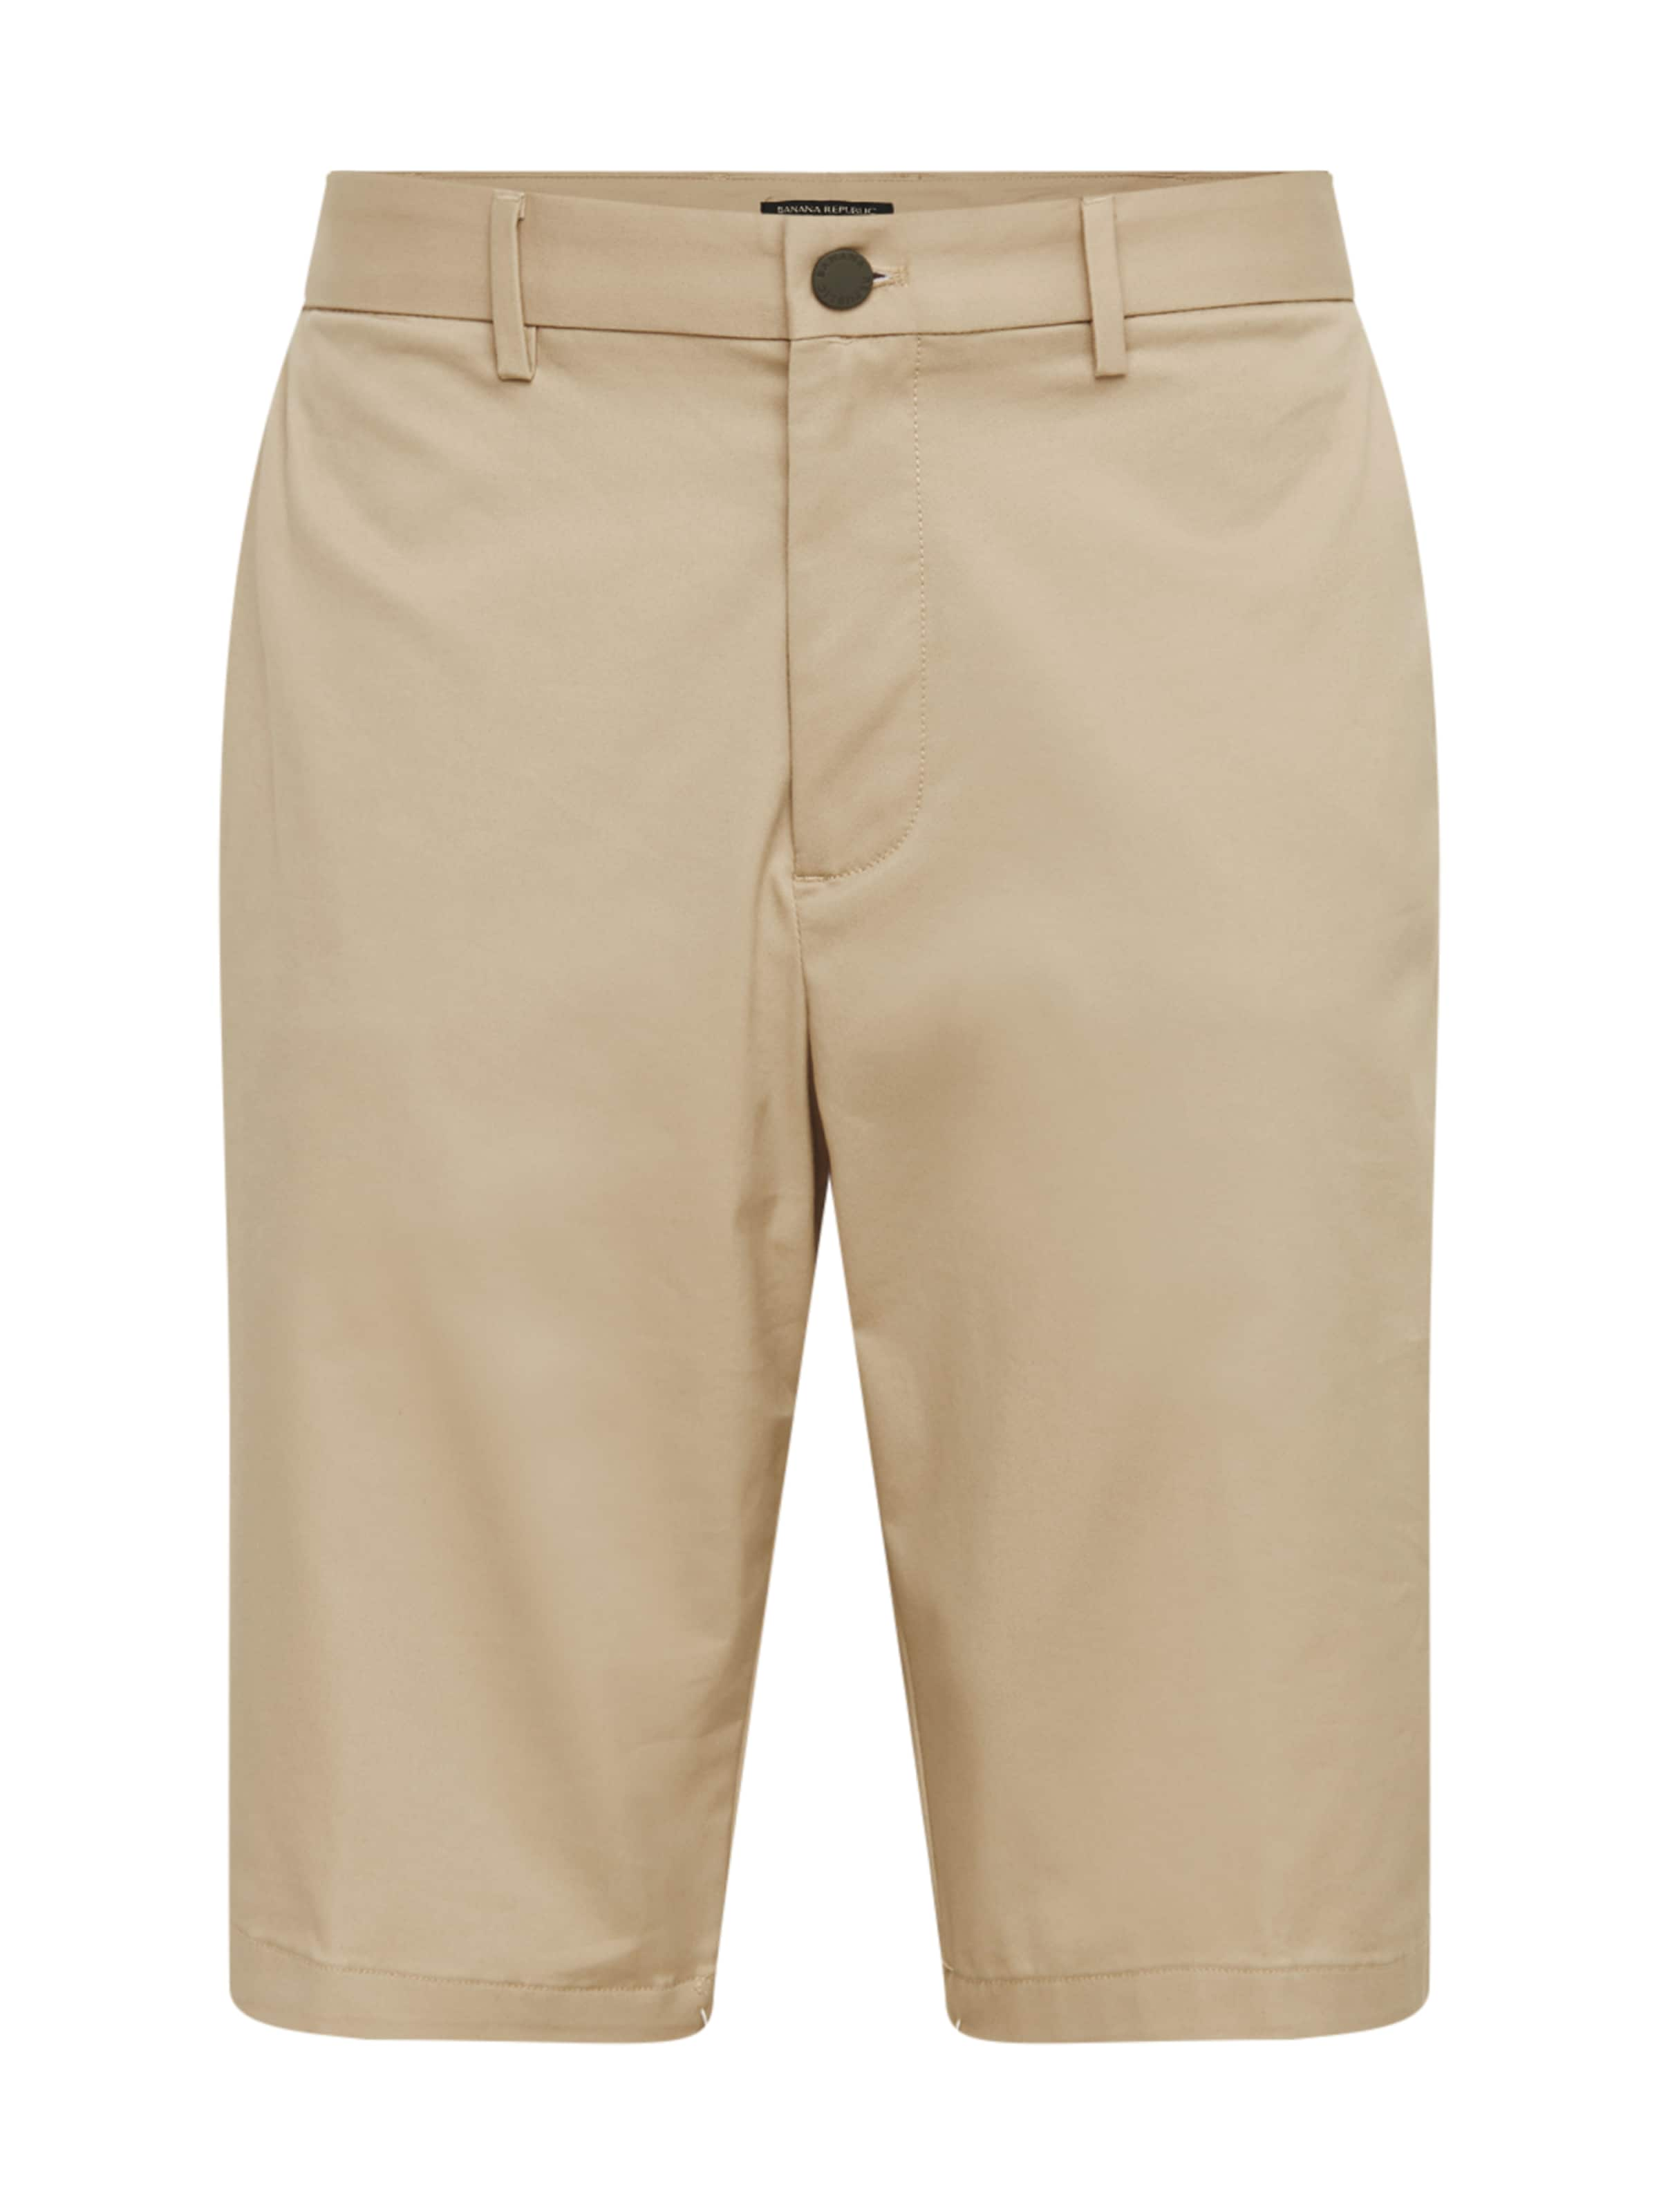 Banana Republic En Clair Chino 'emerson Pantalon Gris 11' cuJF15TKl3